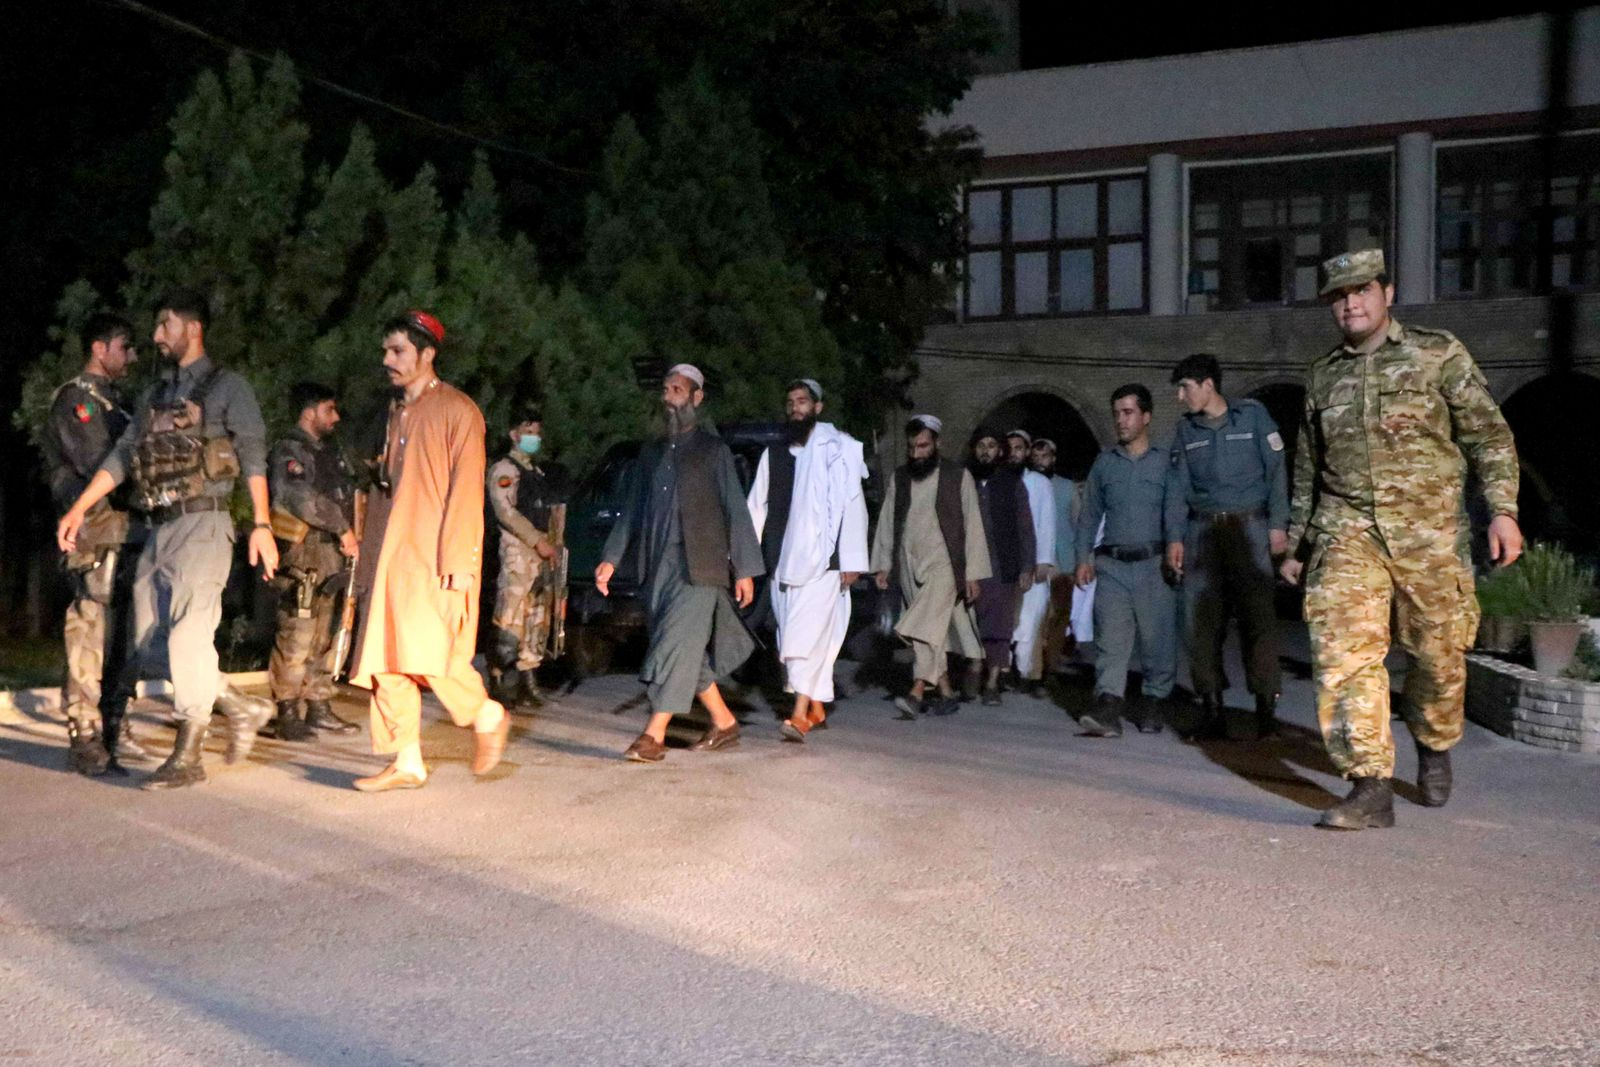 Taliban prisoners released by the Afghan government, Herat, Afghanistan - 17 Jun 2020